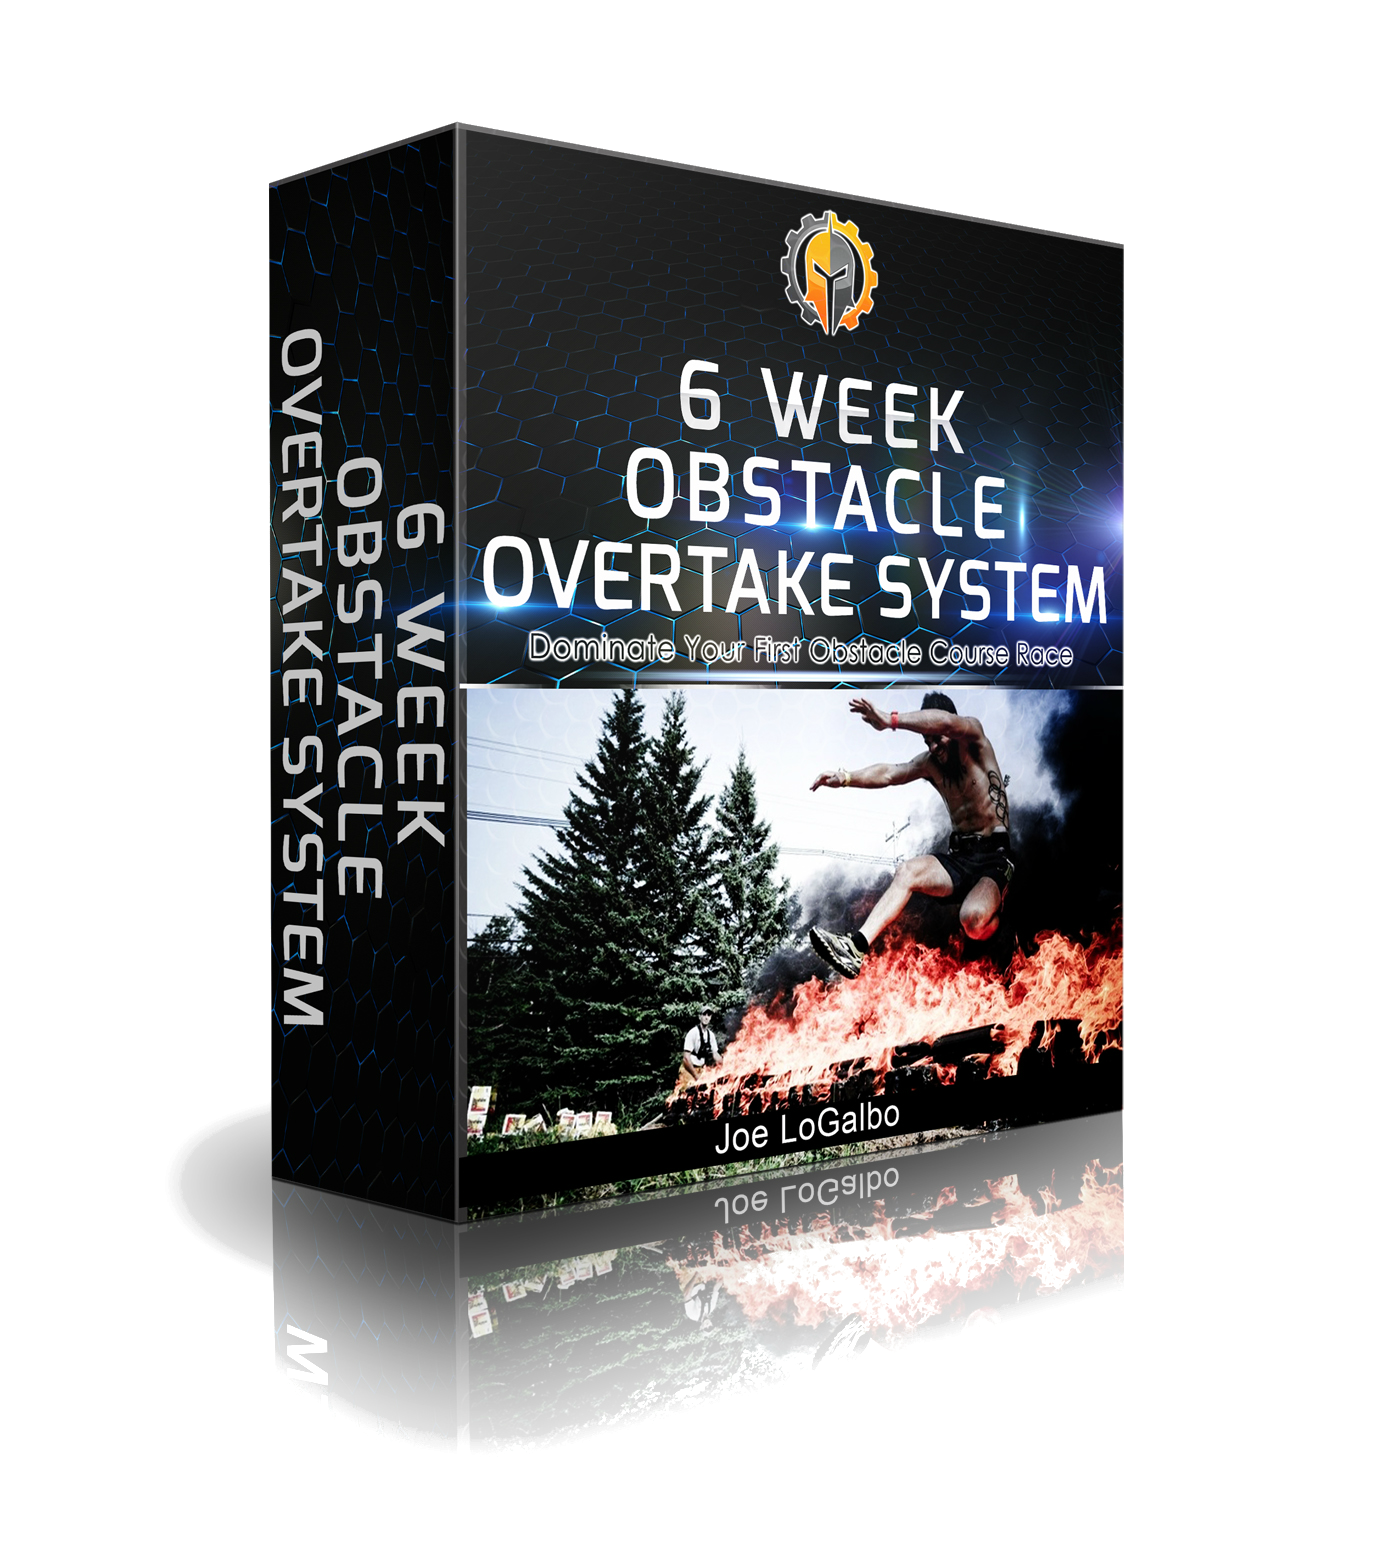 WEu0027VE PREPARED THIS CUSTOMIZED TRAINING PACKAGE TO HELP YOU CRUSH YOUR  FIRST OBSTACLE COURSE RACE! - Free PNG Obstacle Course